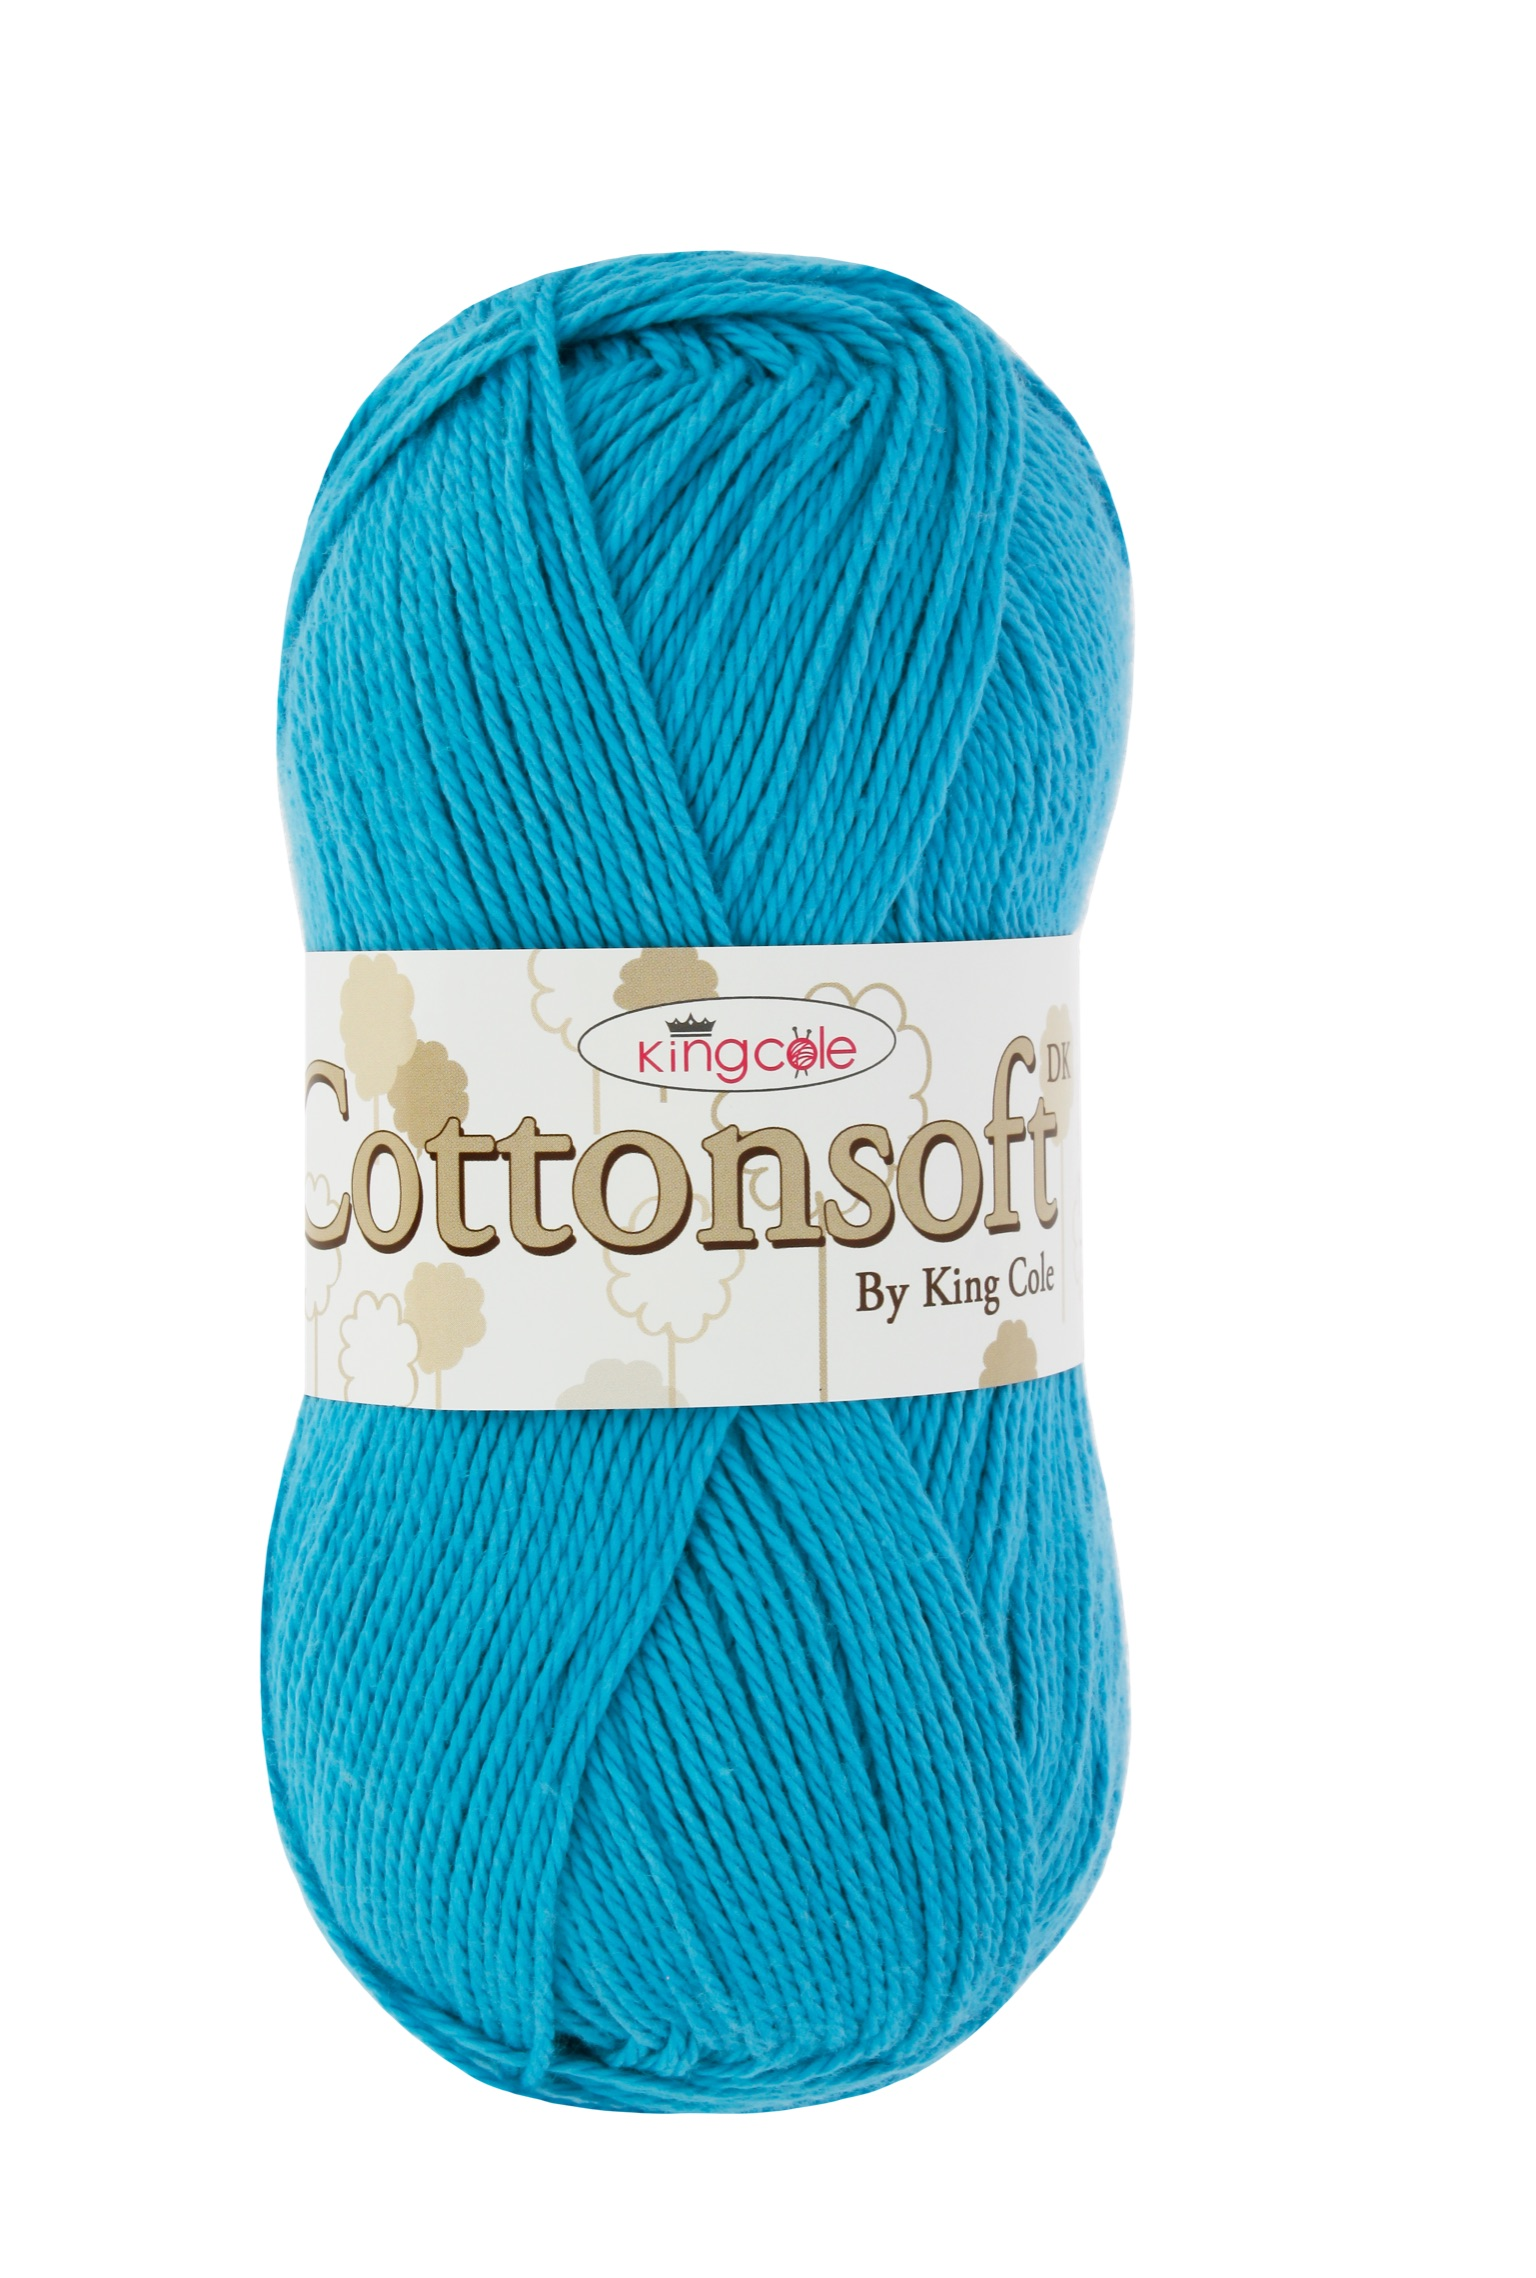 King Cole Cotton Soft DK